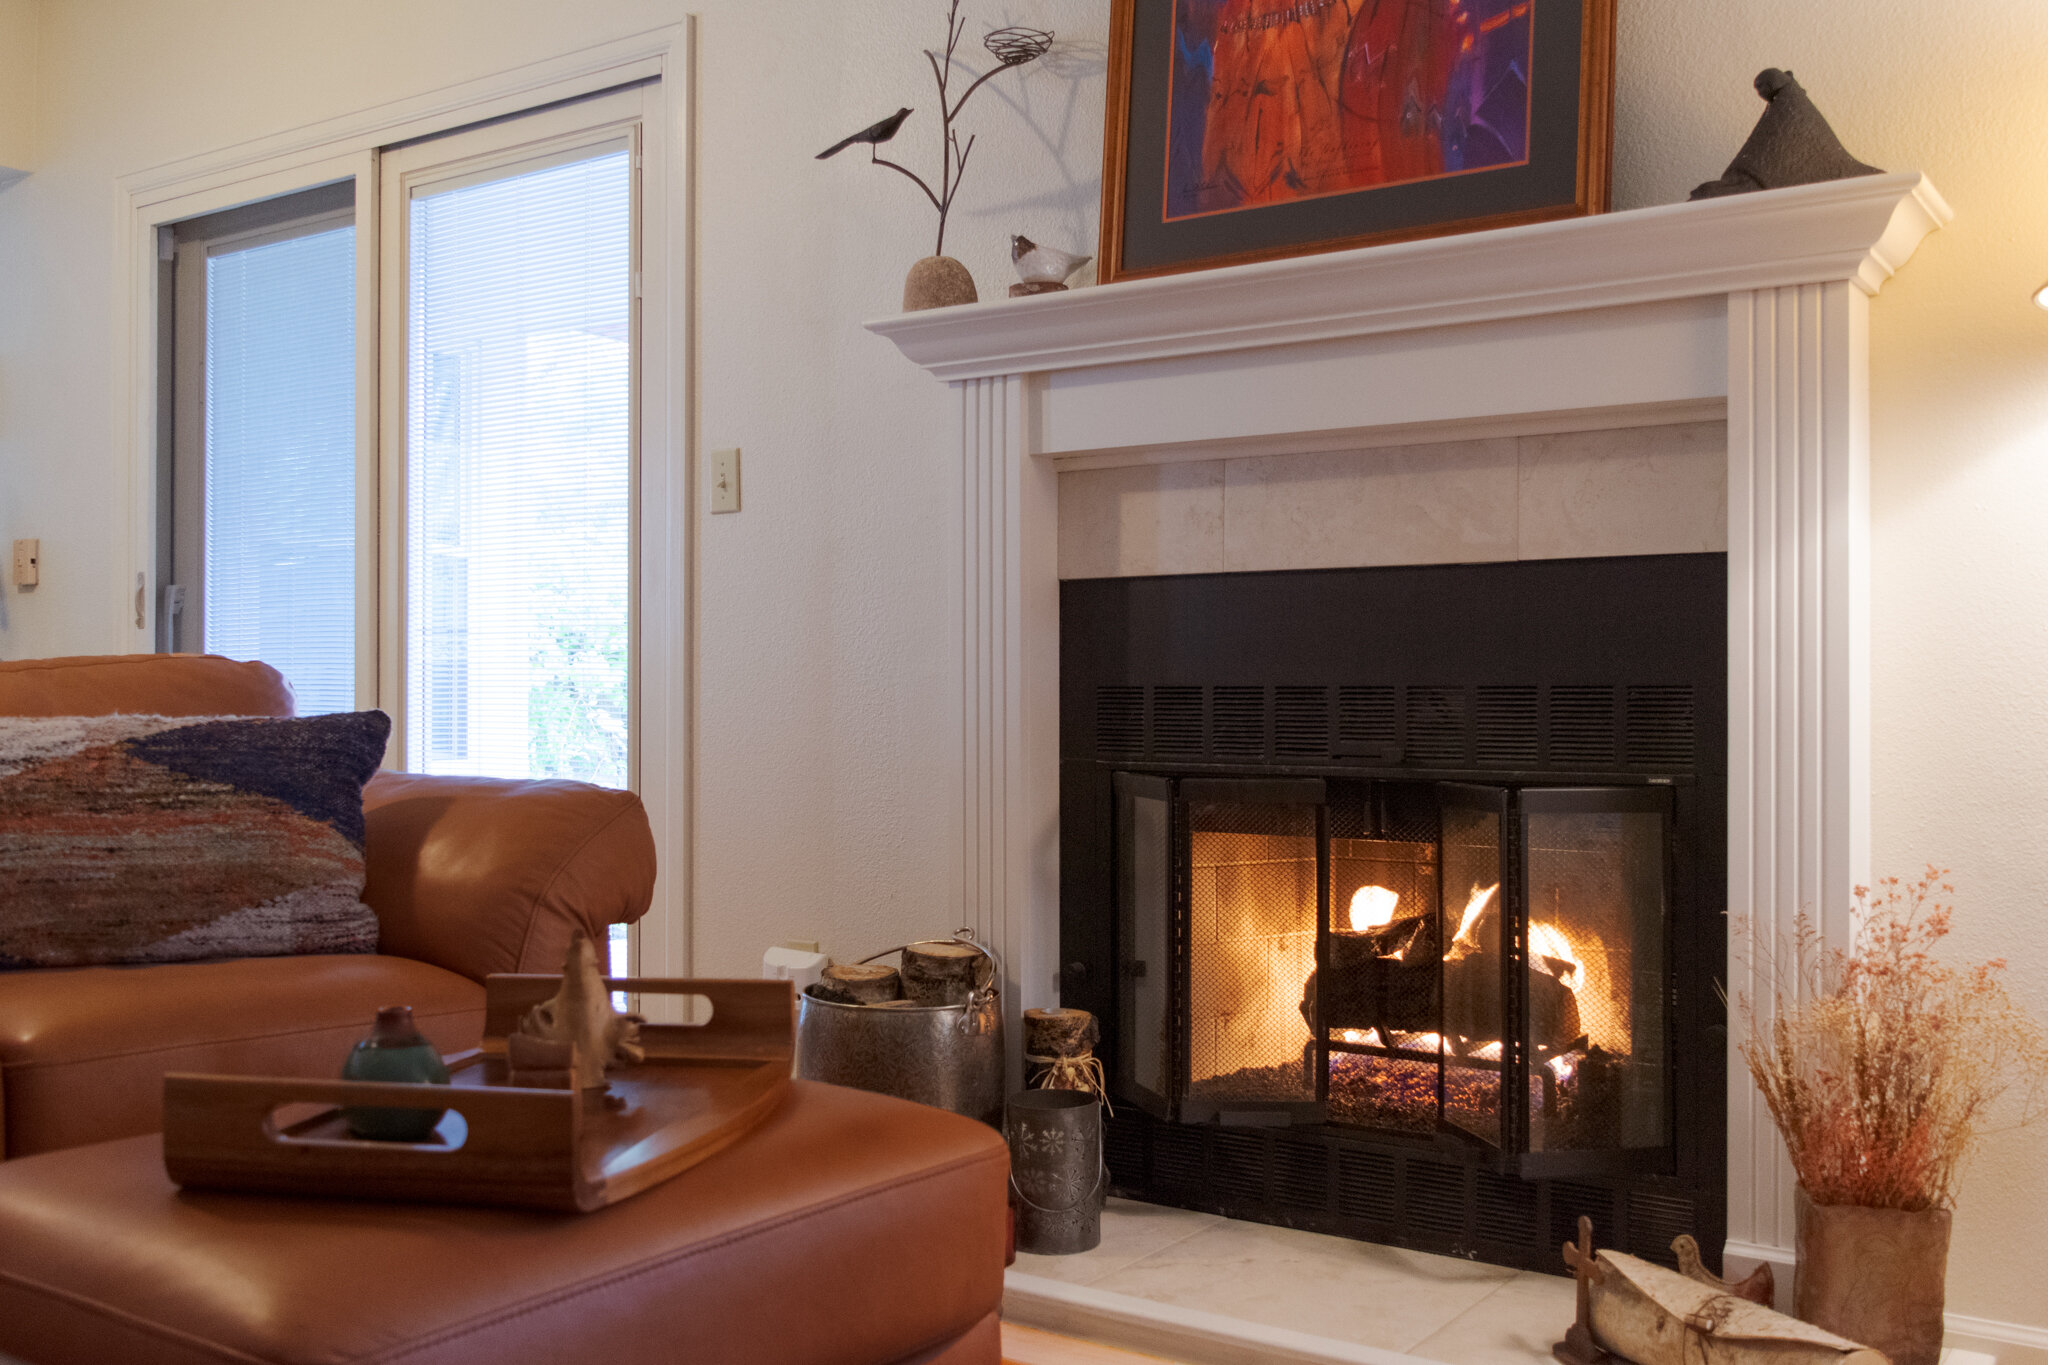 Hargrove Western Pine gas logs in a factory built fireplace with craftsman style pillars and mantel.